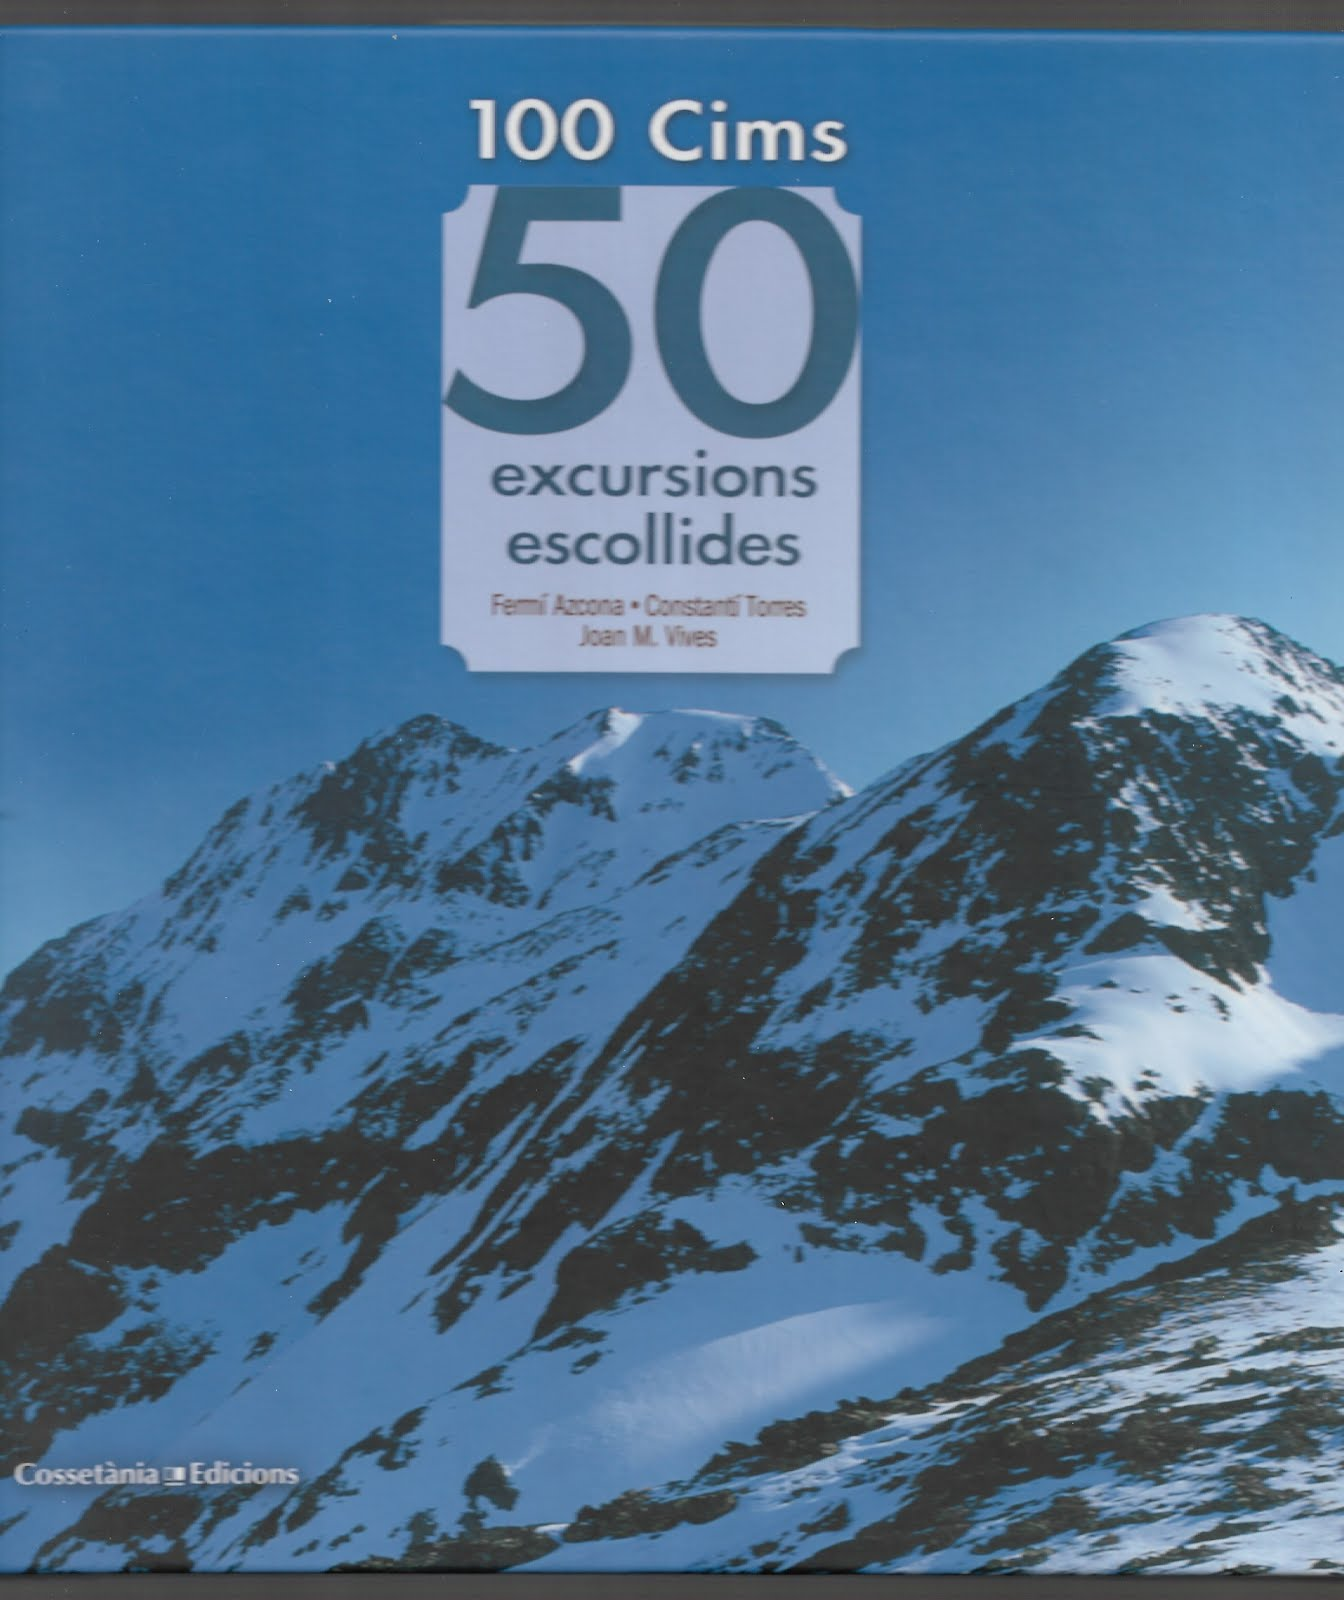 100 CIMS. 50 EXCURSIONS ESCOLLIDES